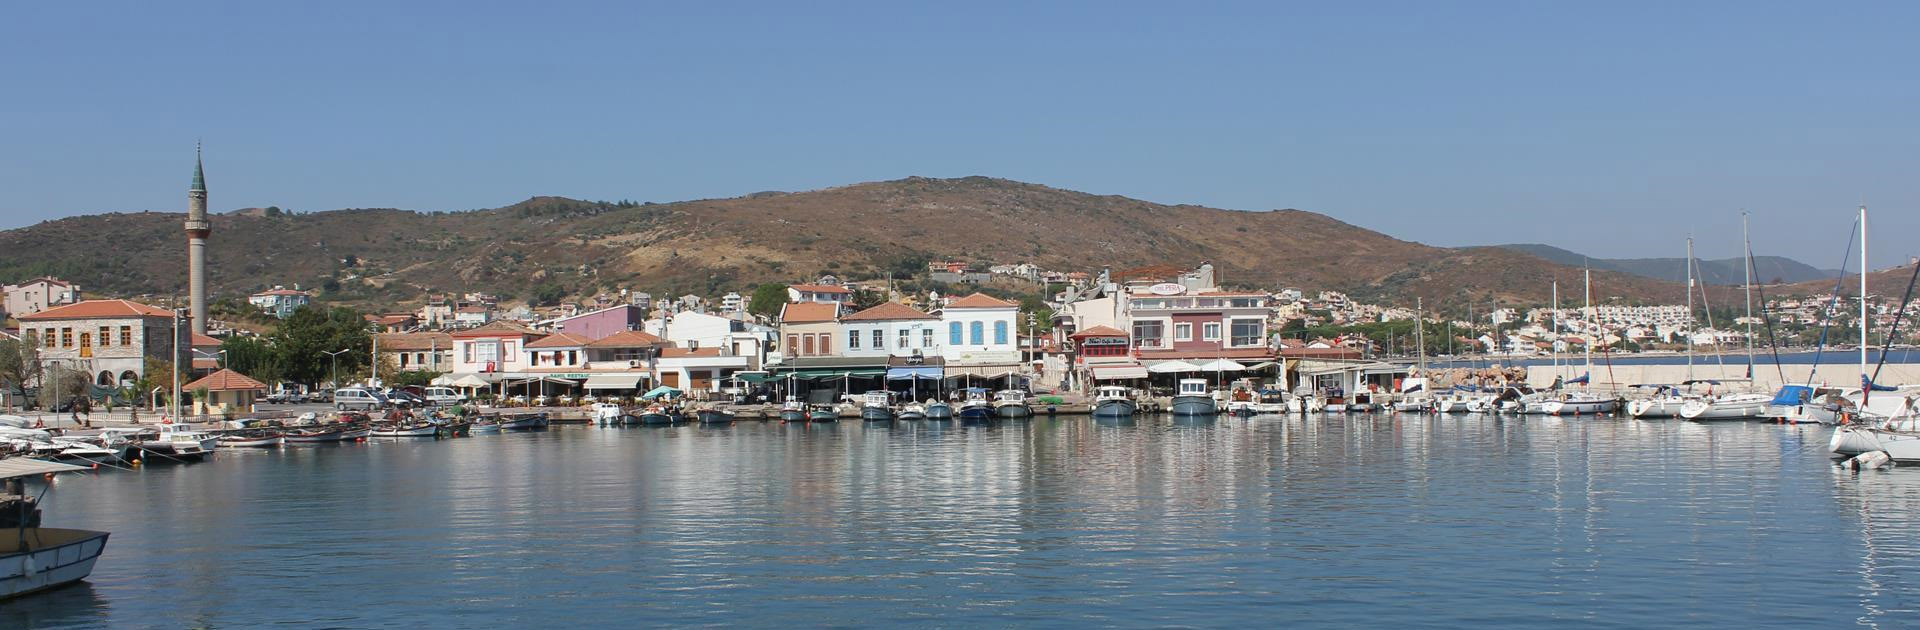 Urla Yatch Harbor